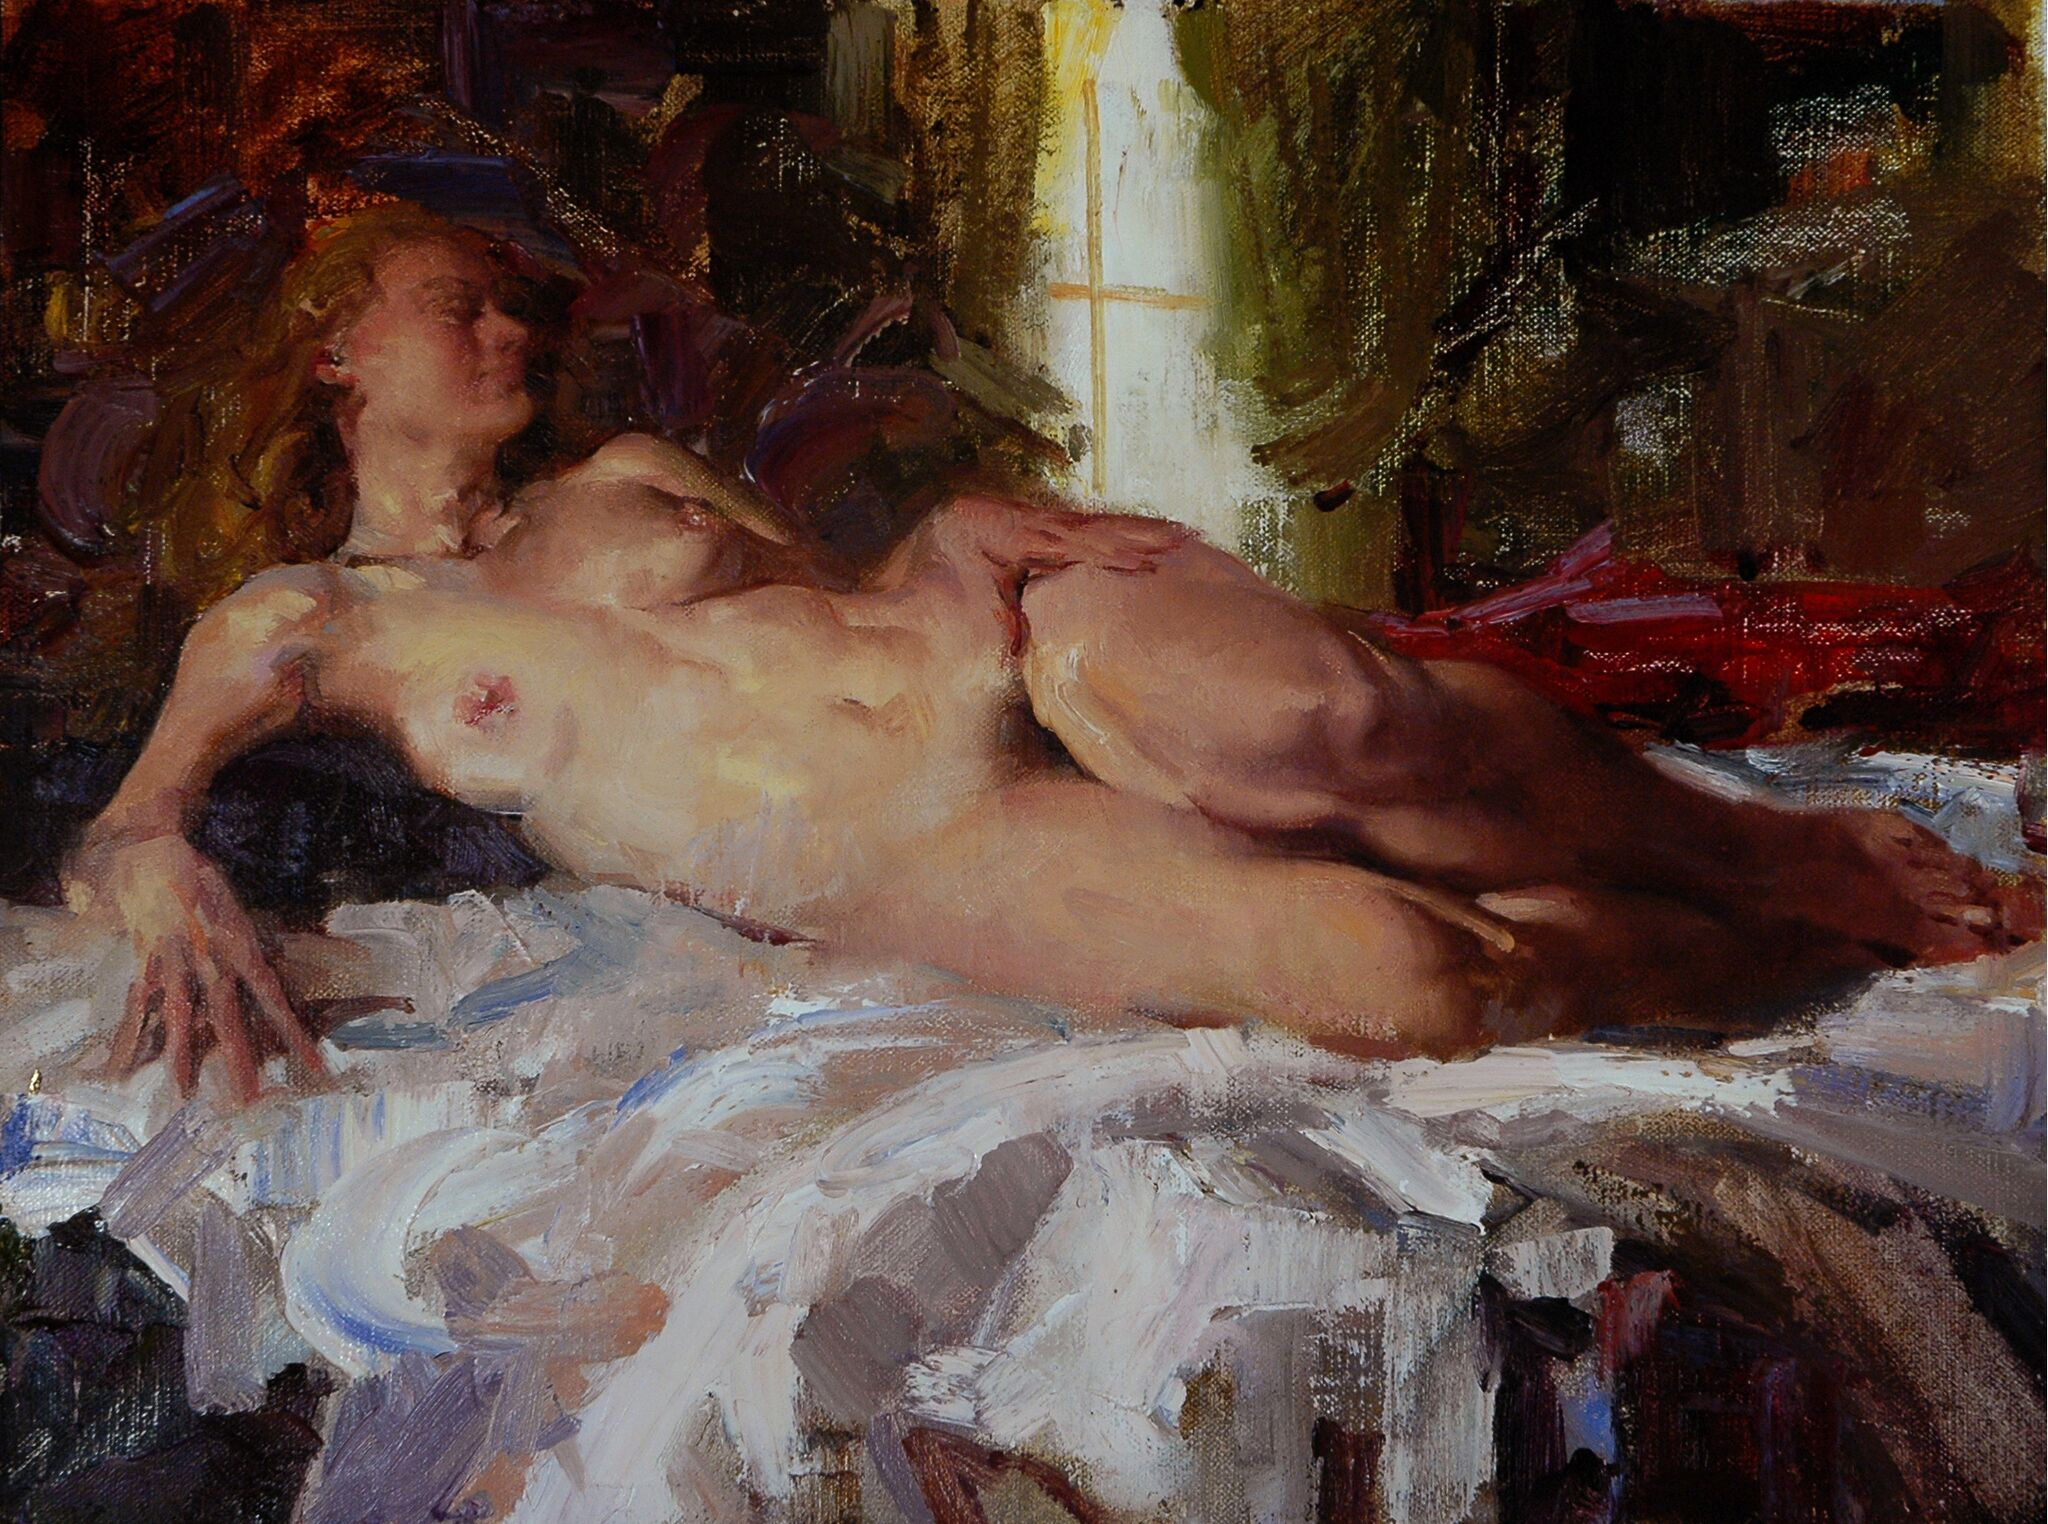 reclining nudestudy_preview